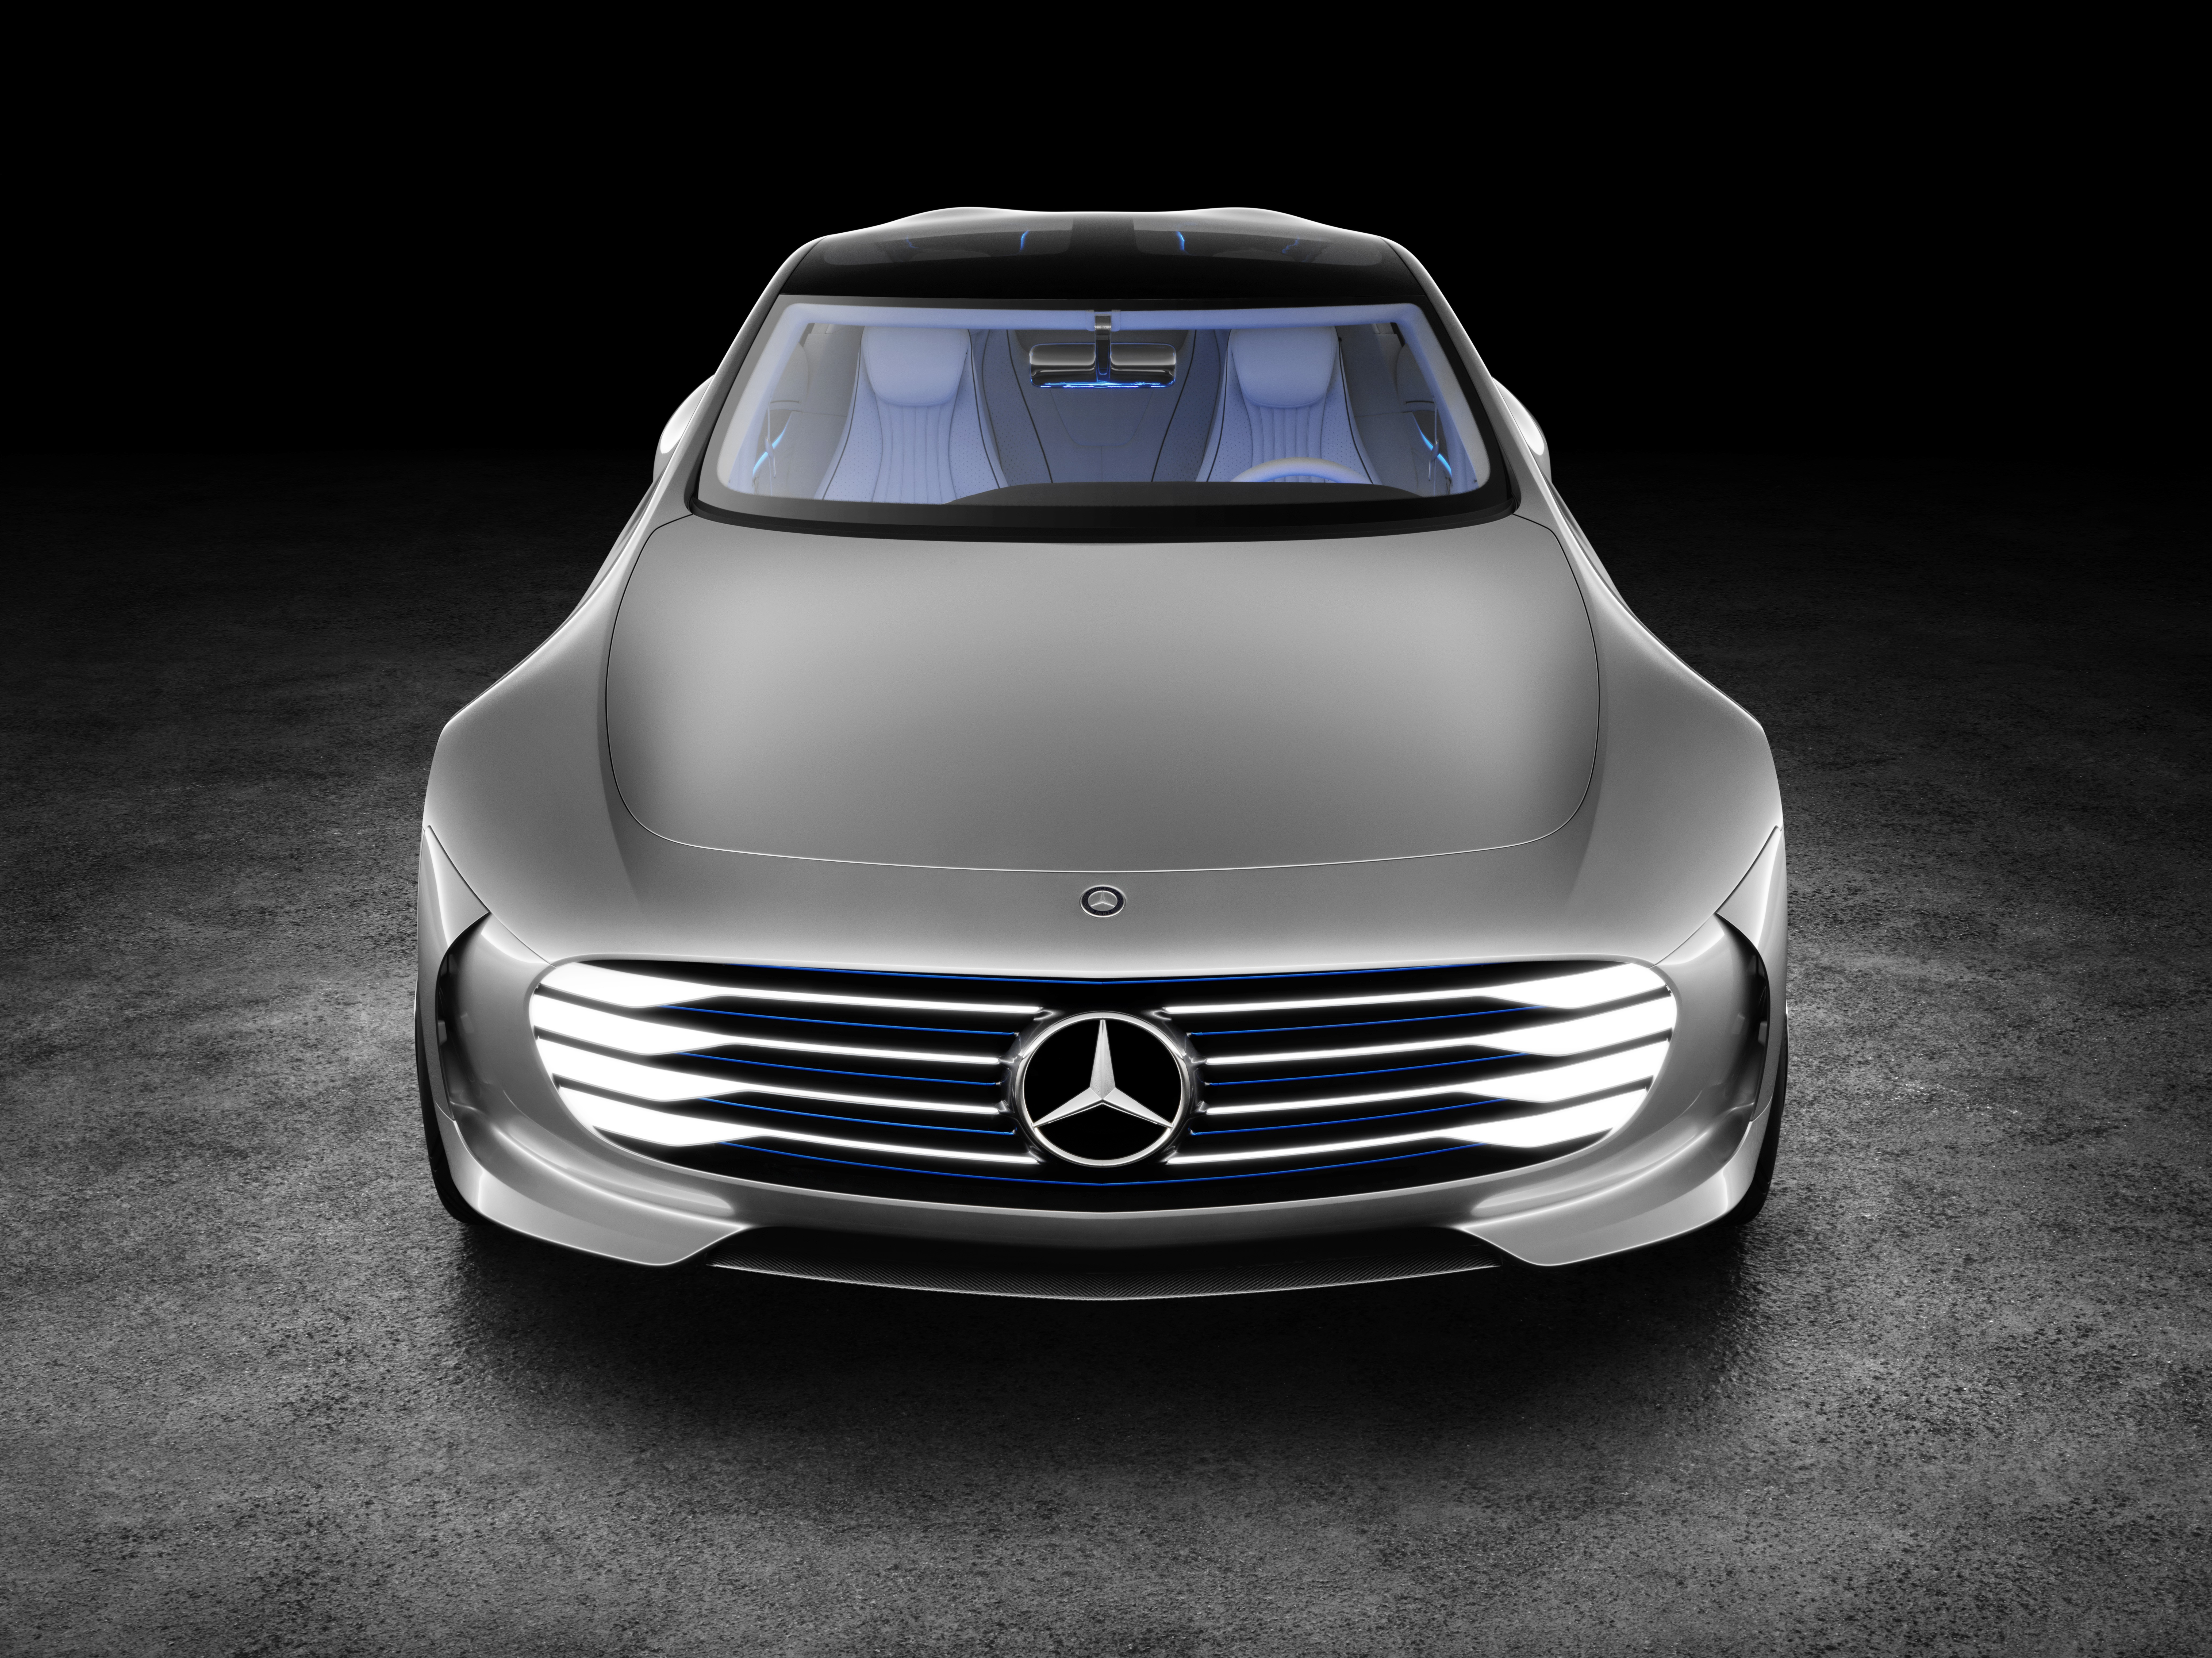 Mercedes B Class Electric >> Mercedes-Benz CLE Could Become World's Most Aerodynamic Car - autoevolution